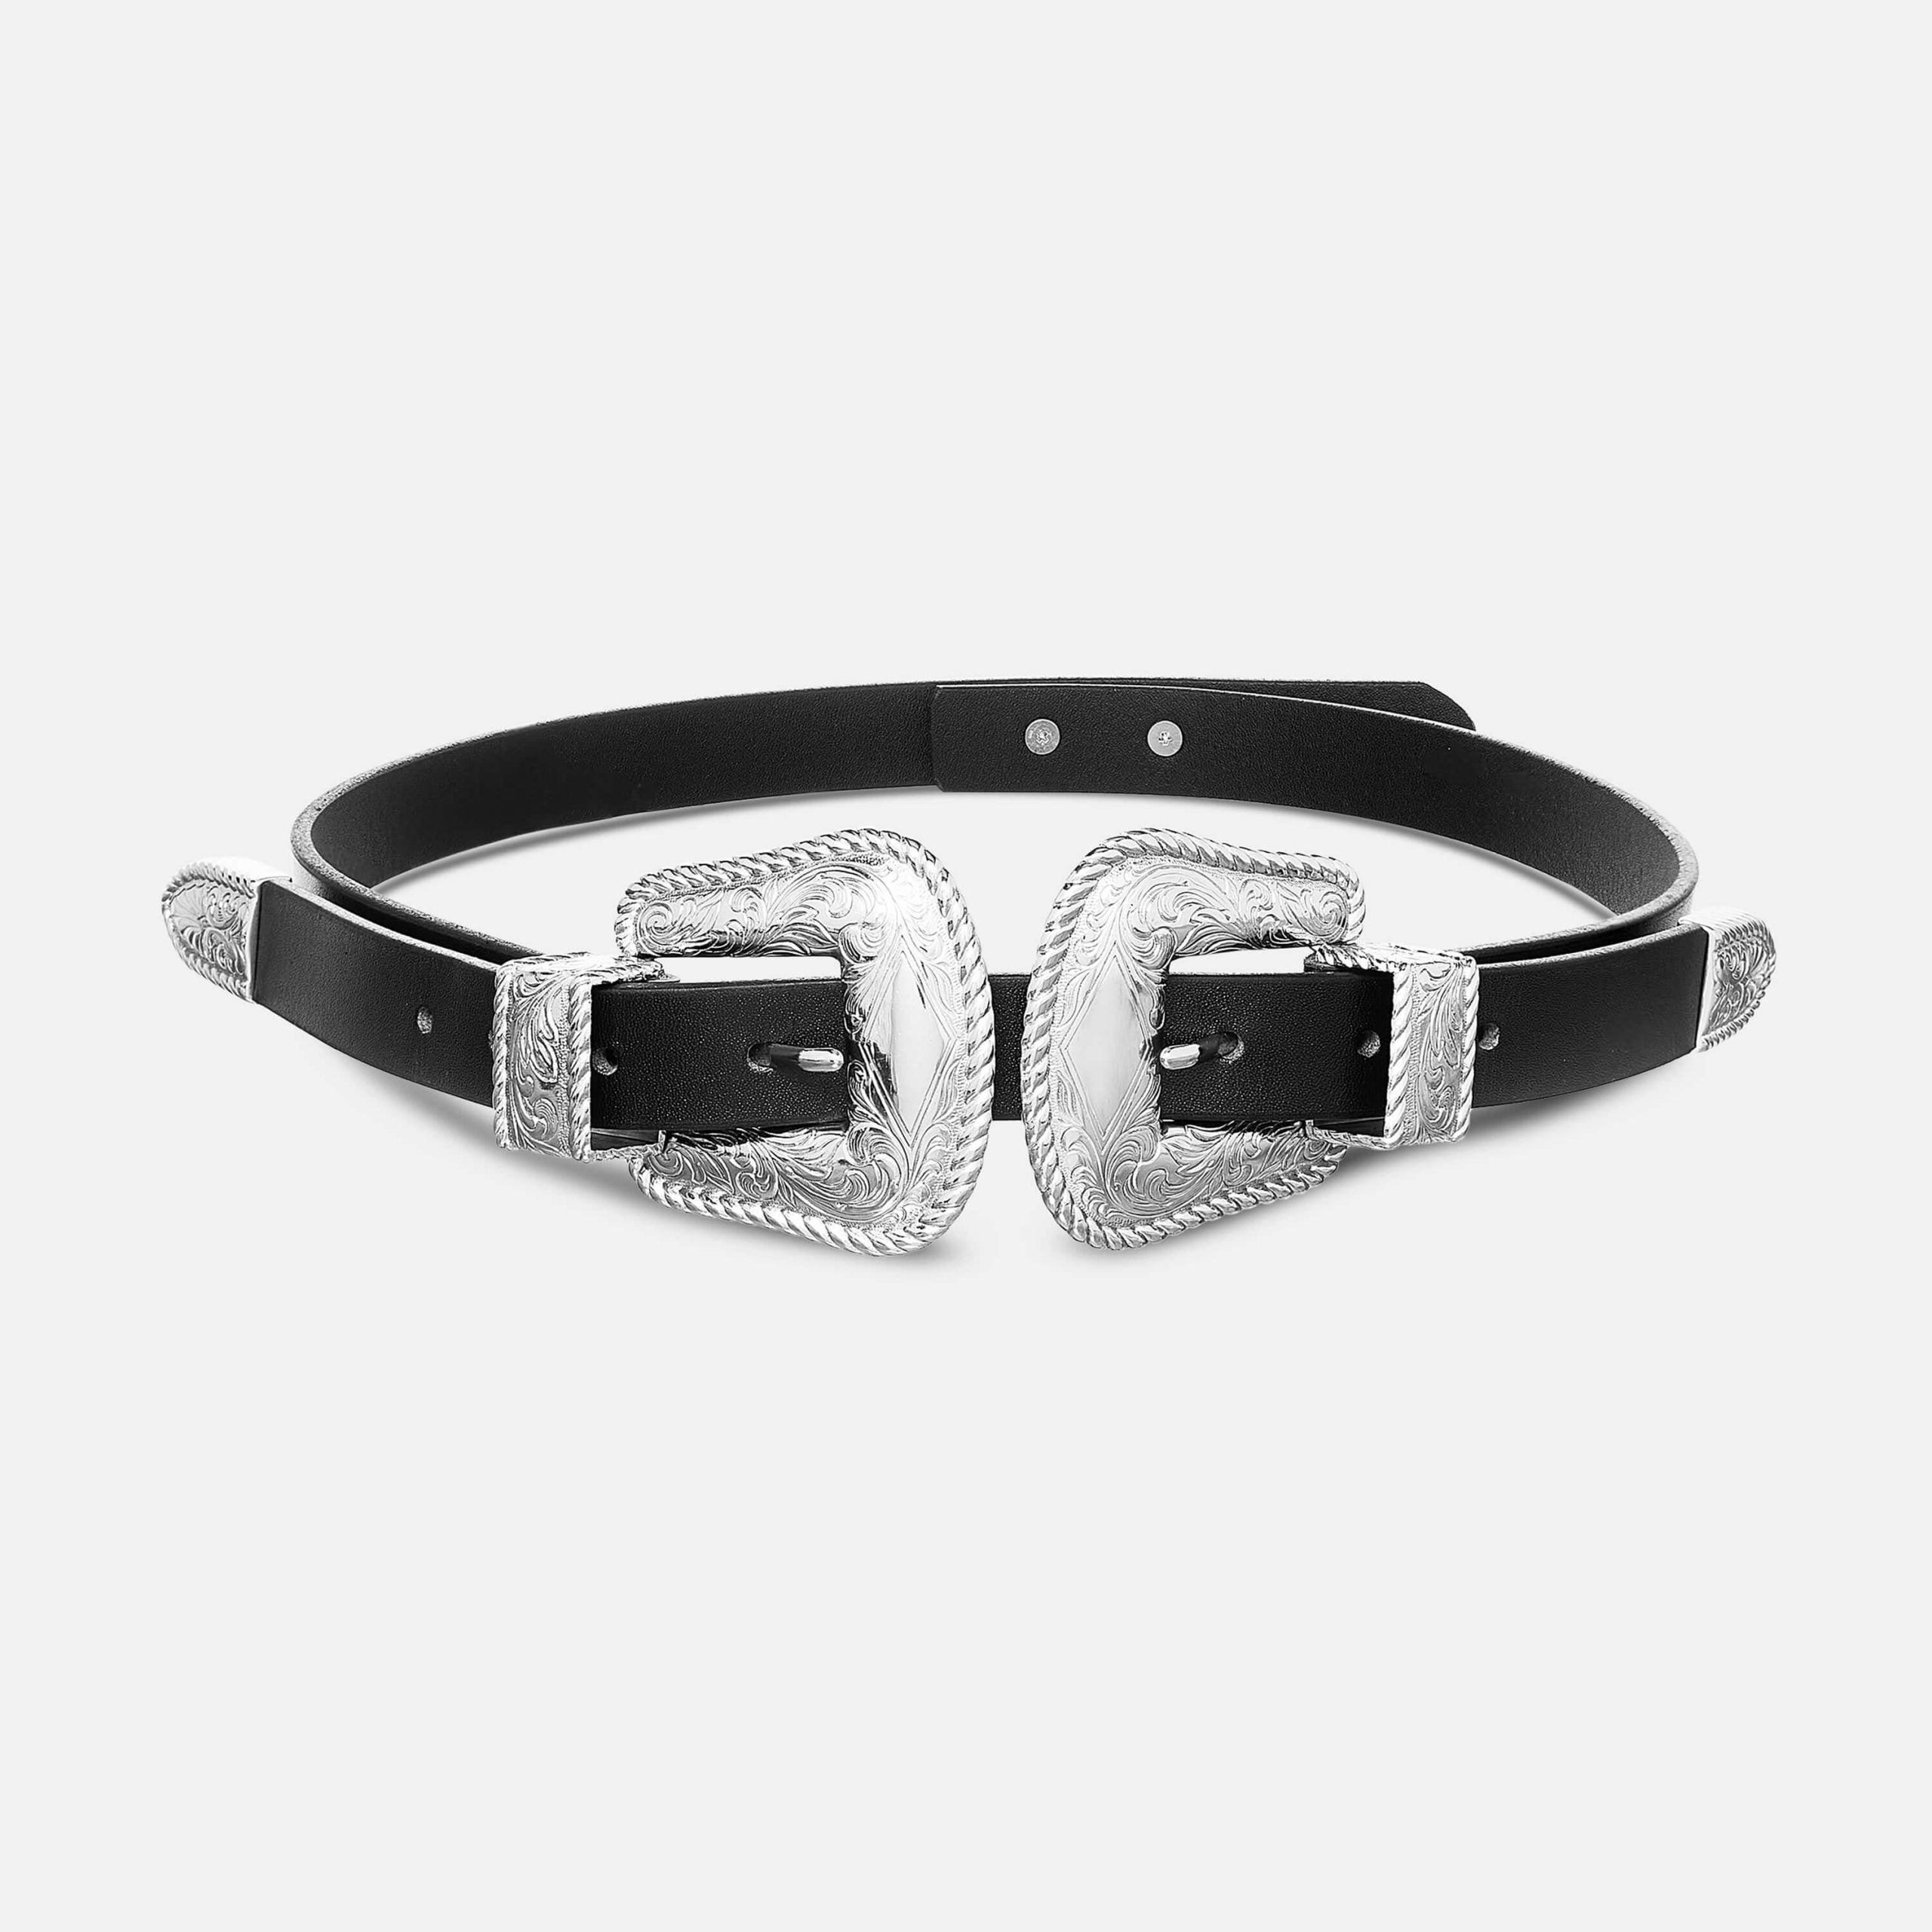 Face2Face - Belts | Limited face to face belts gallery 3 scaled